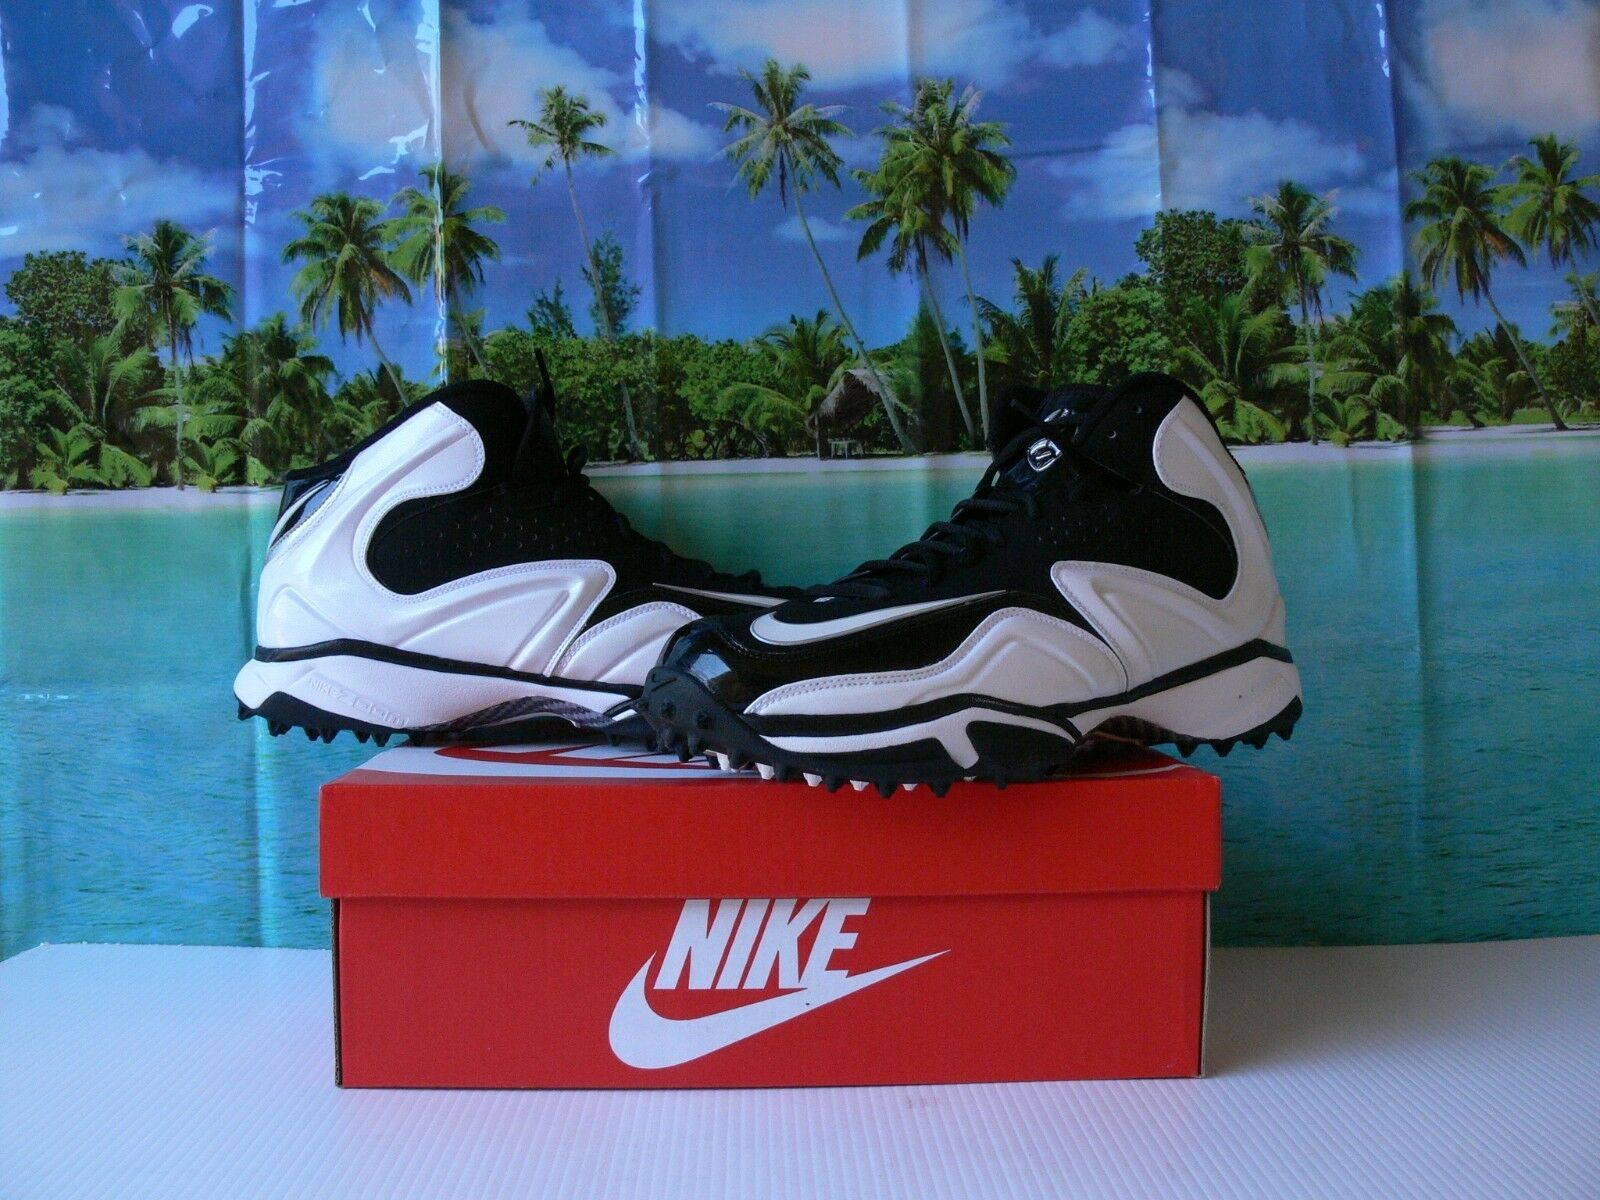 NIKE SPEED DESTROYER  TURF CLEATS white black  SIZE US 14.5   /